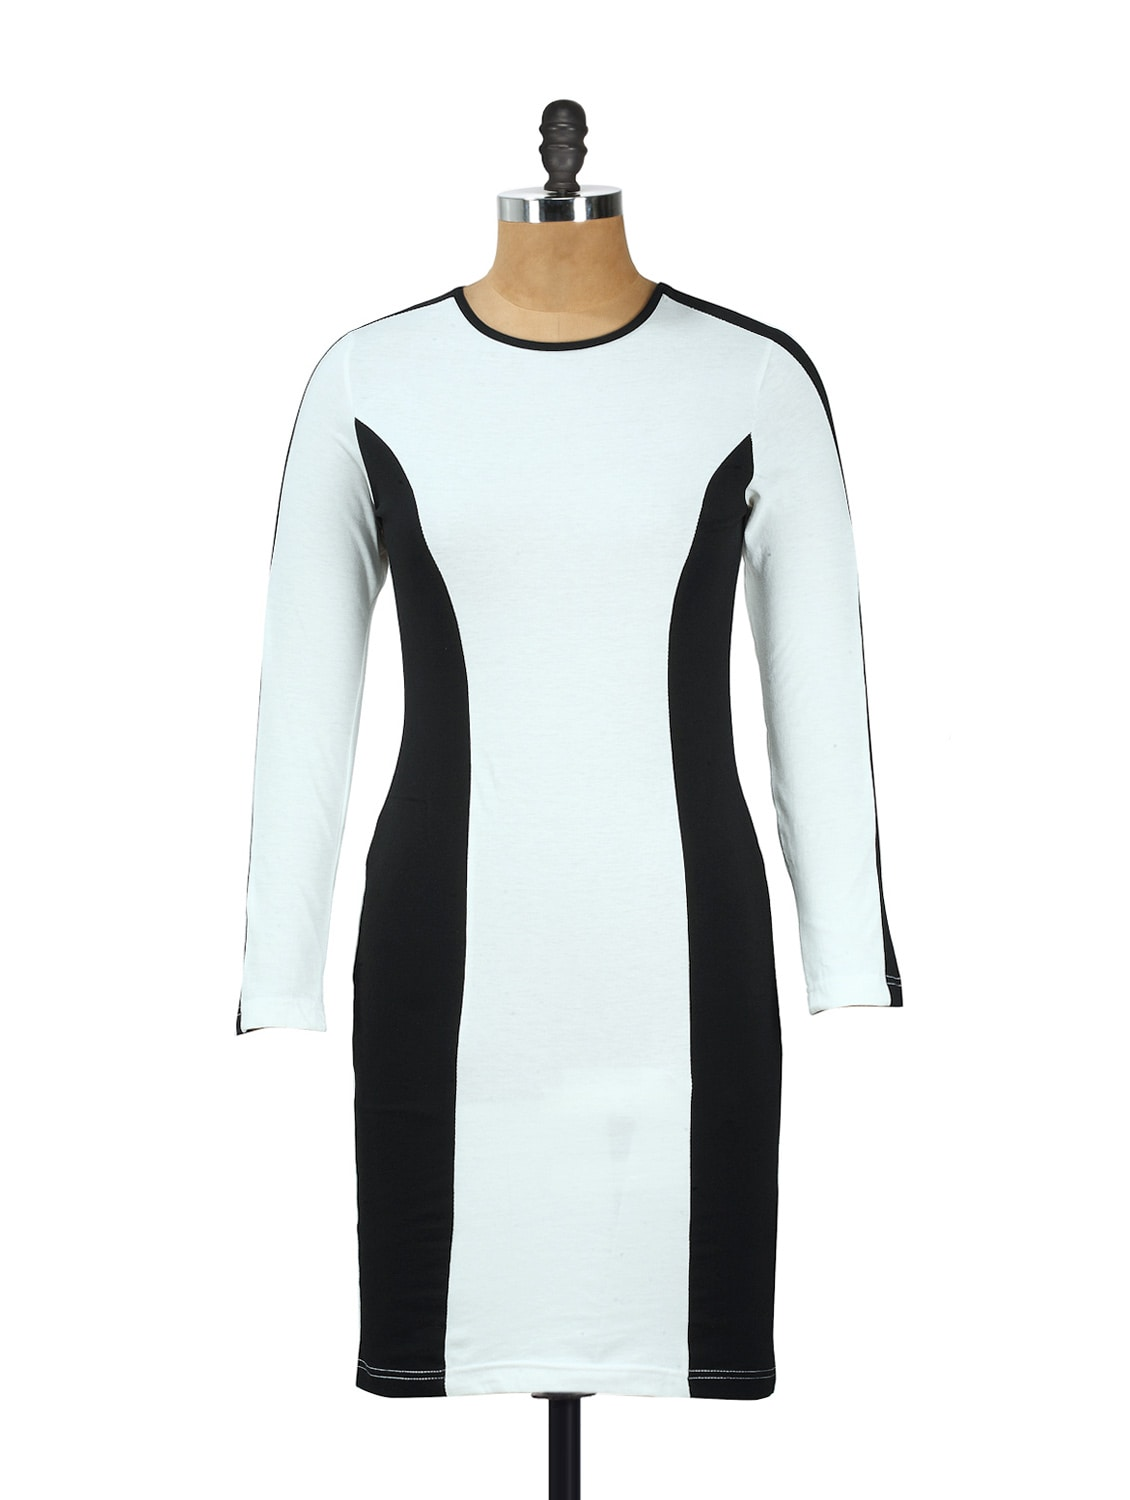 White Cotton Knit Full-sleeved Dress With Black Side Stripes - AKYRA